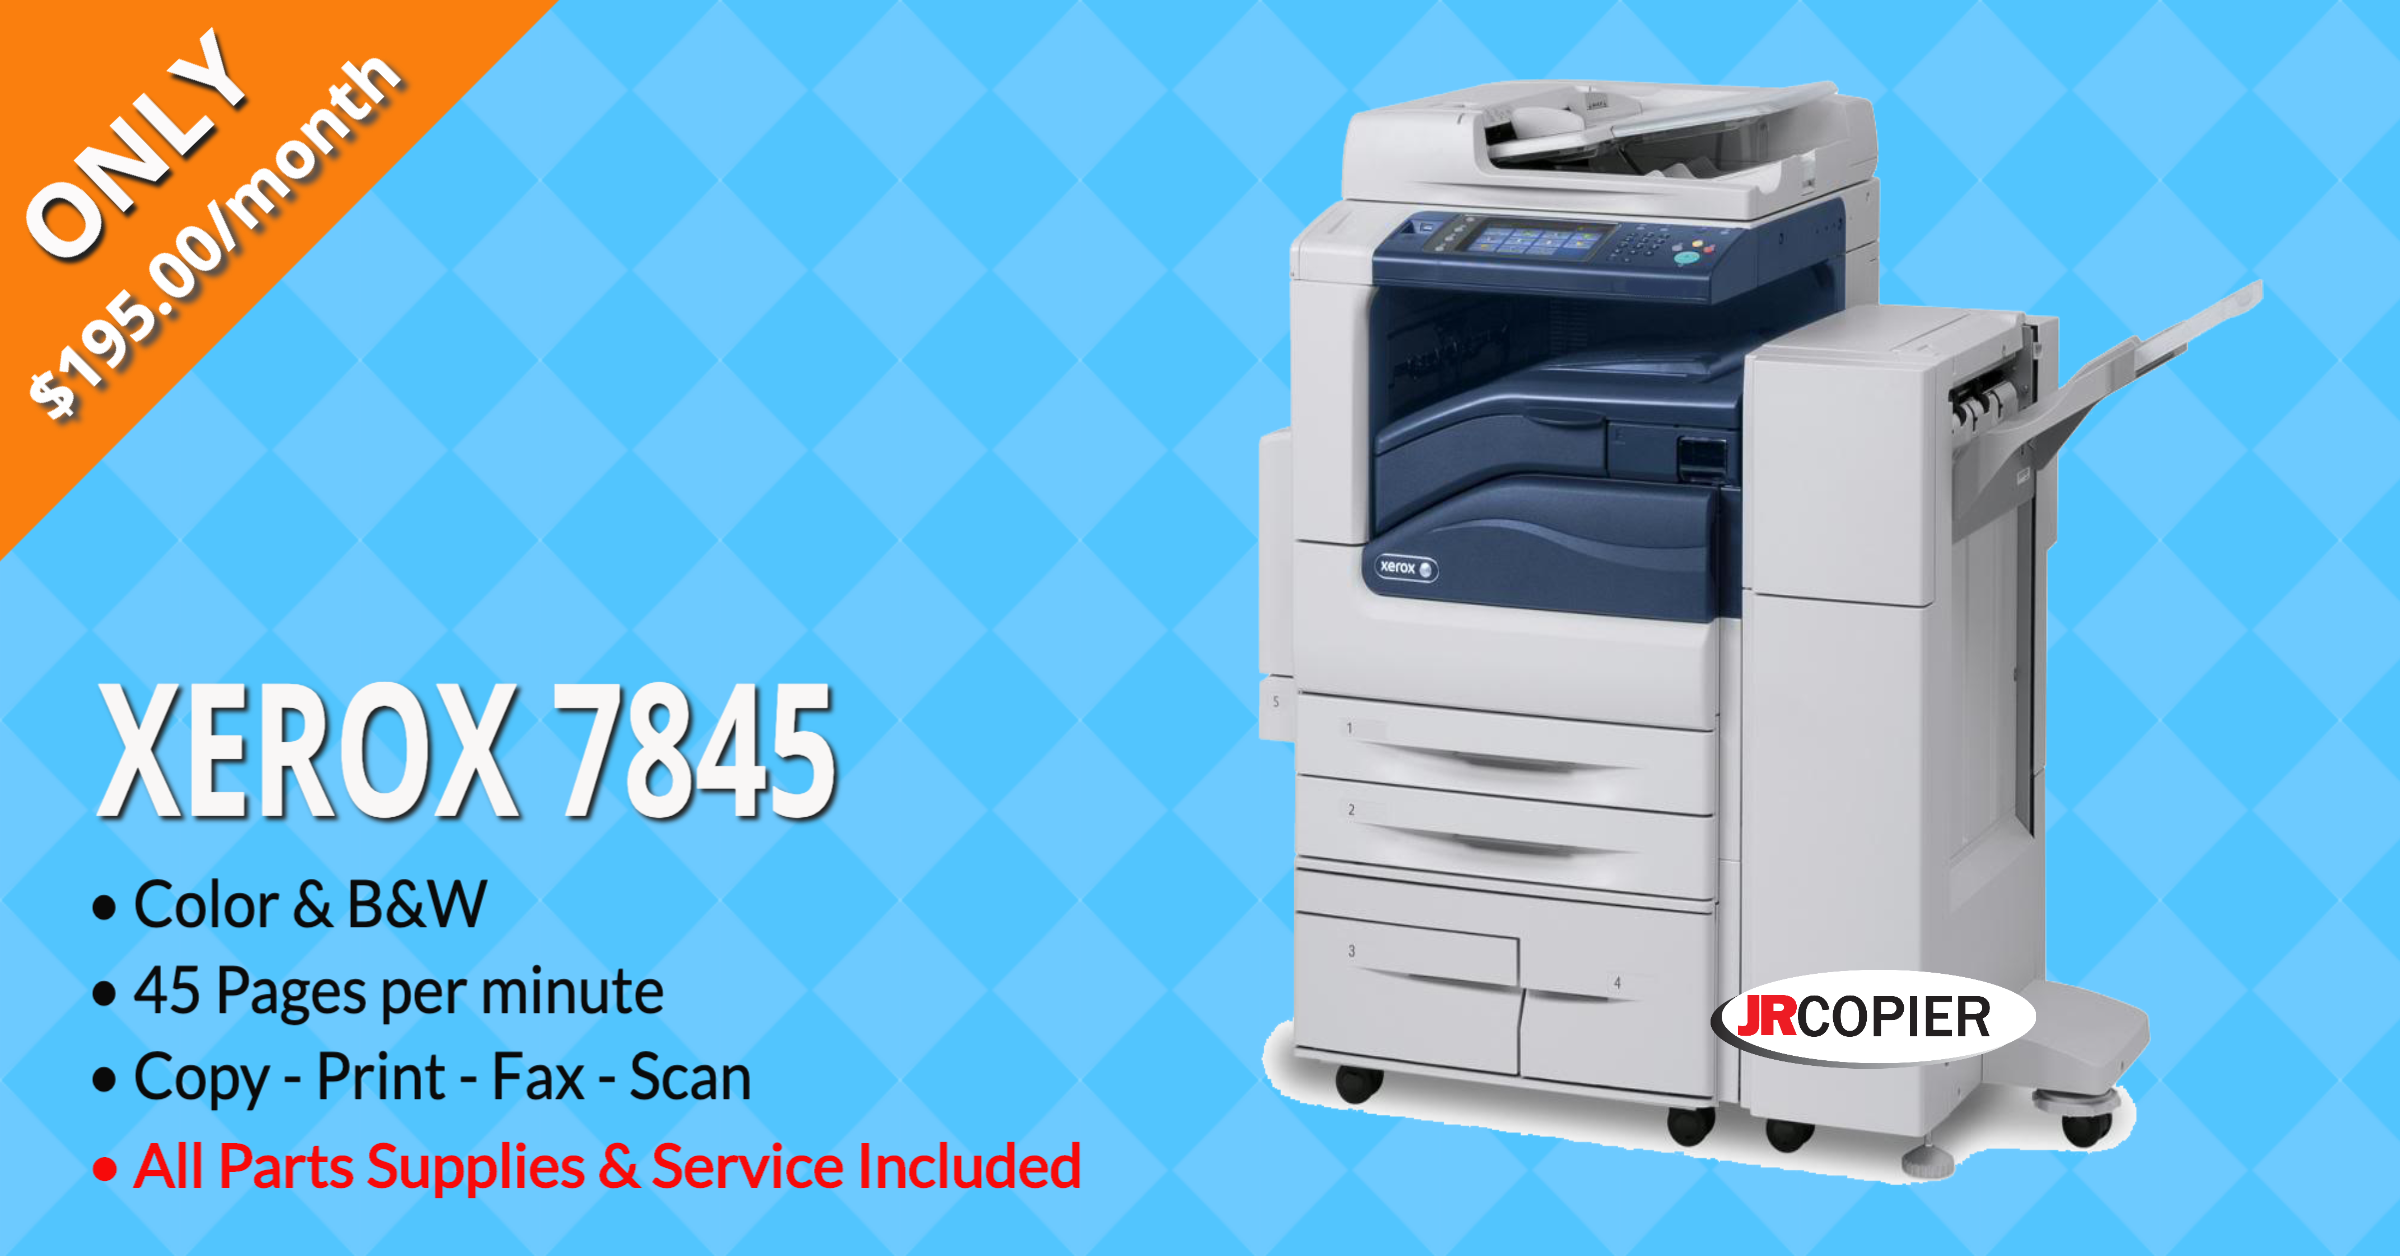 Color Laser Printer 07920, 08805, 08807, 08836